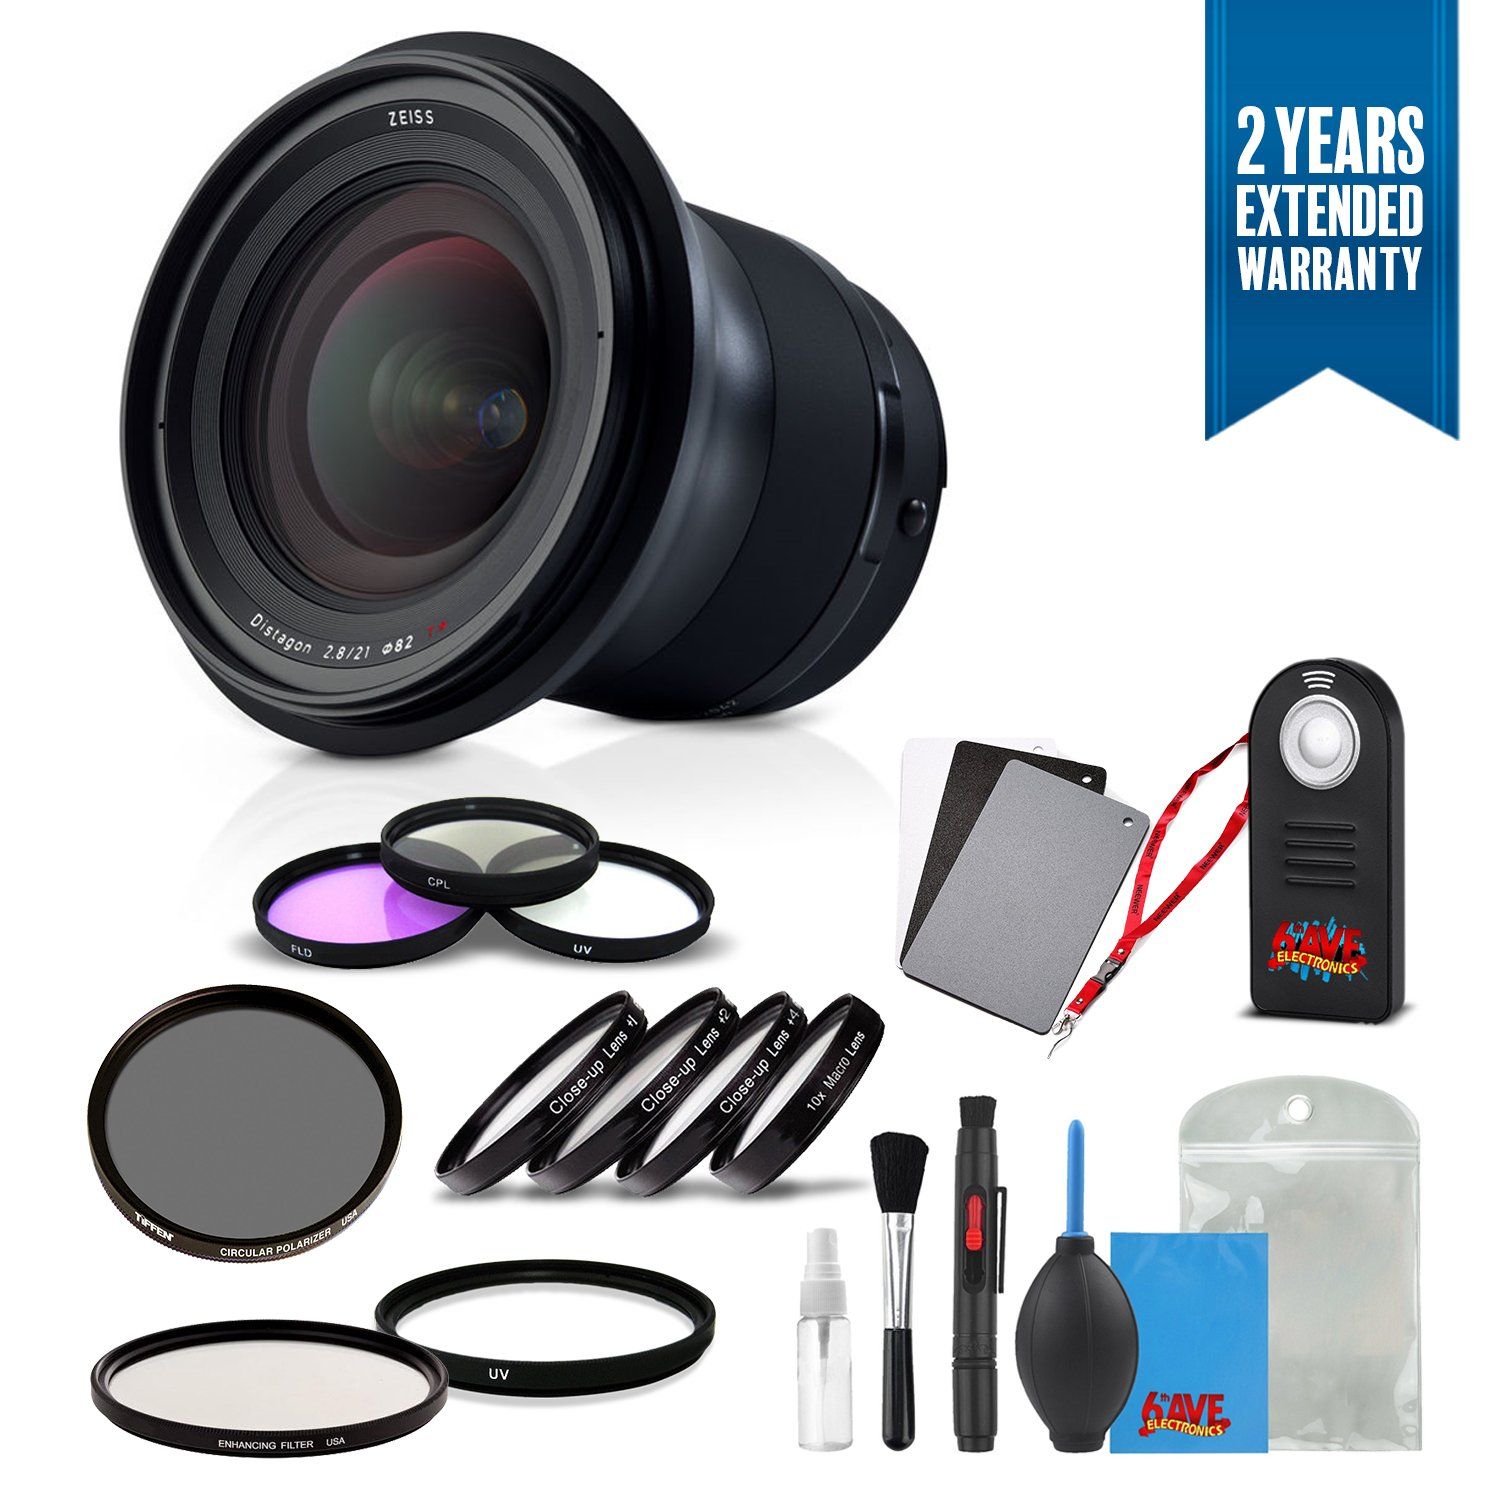 Zeiss Milvus 21 mm f / 2.8 ZE Lens for Canon EF – 2096 – 549 withクリーニングアクセサリーキットと2年間延長保証   B07DHYG81K